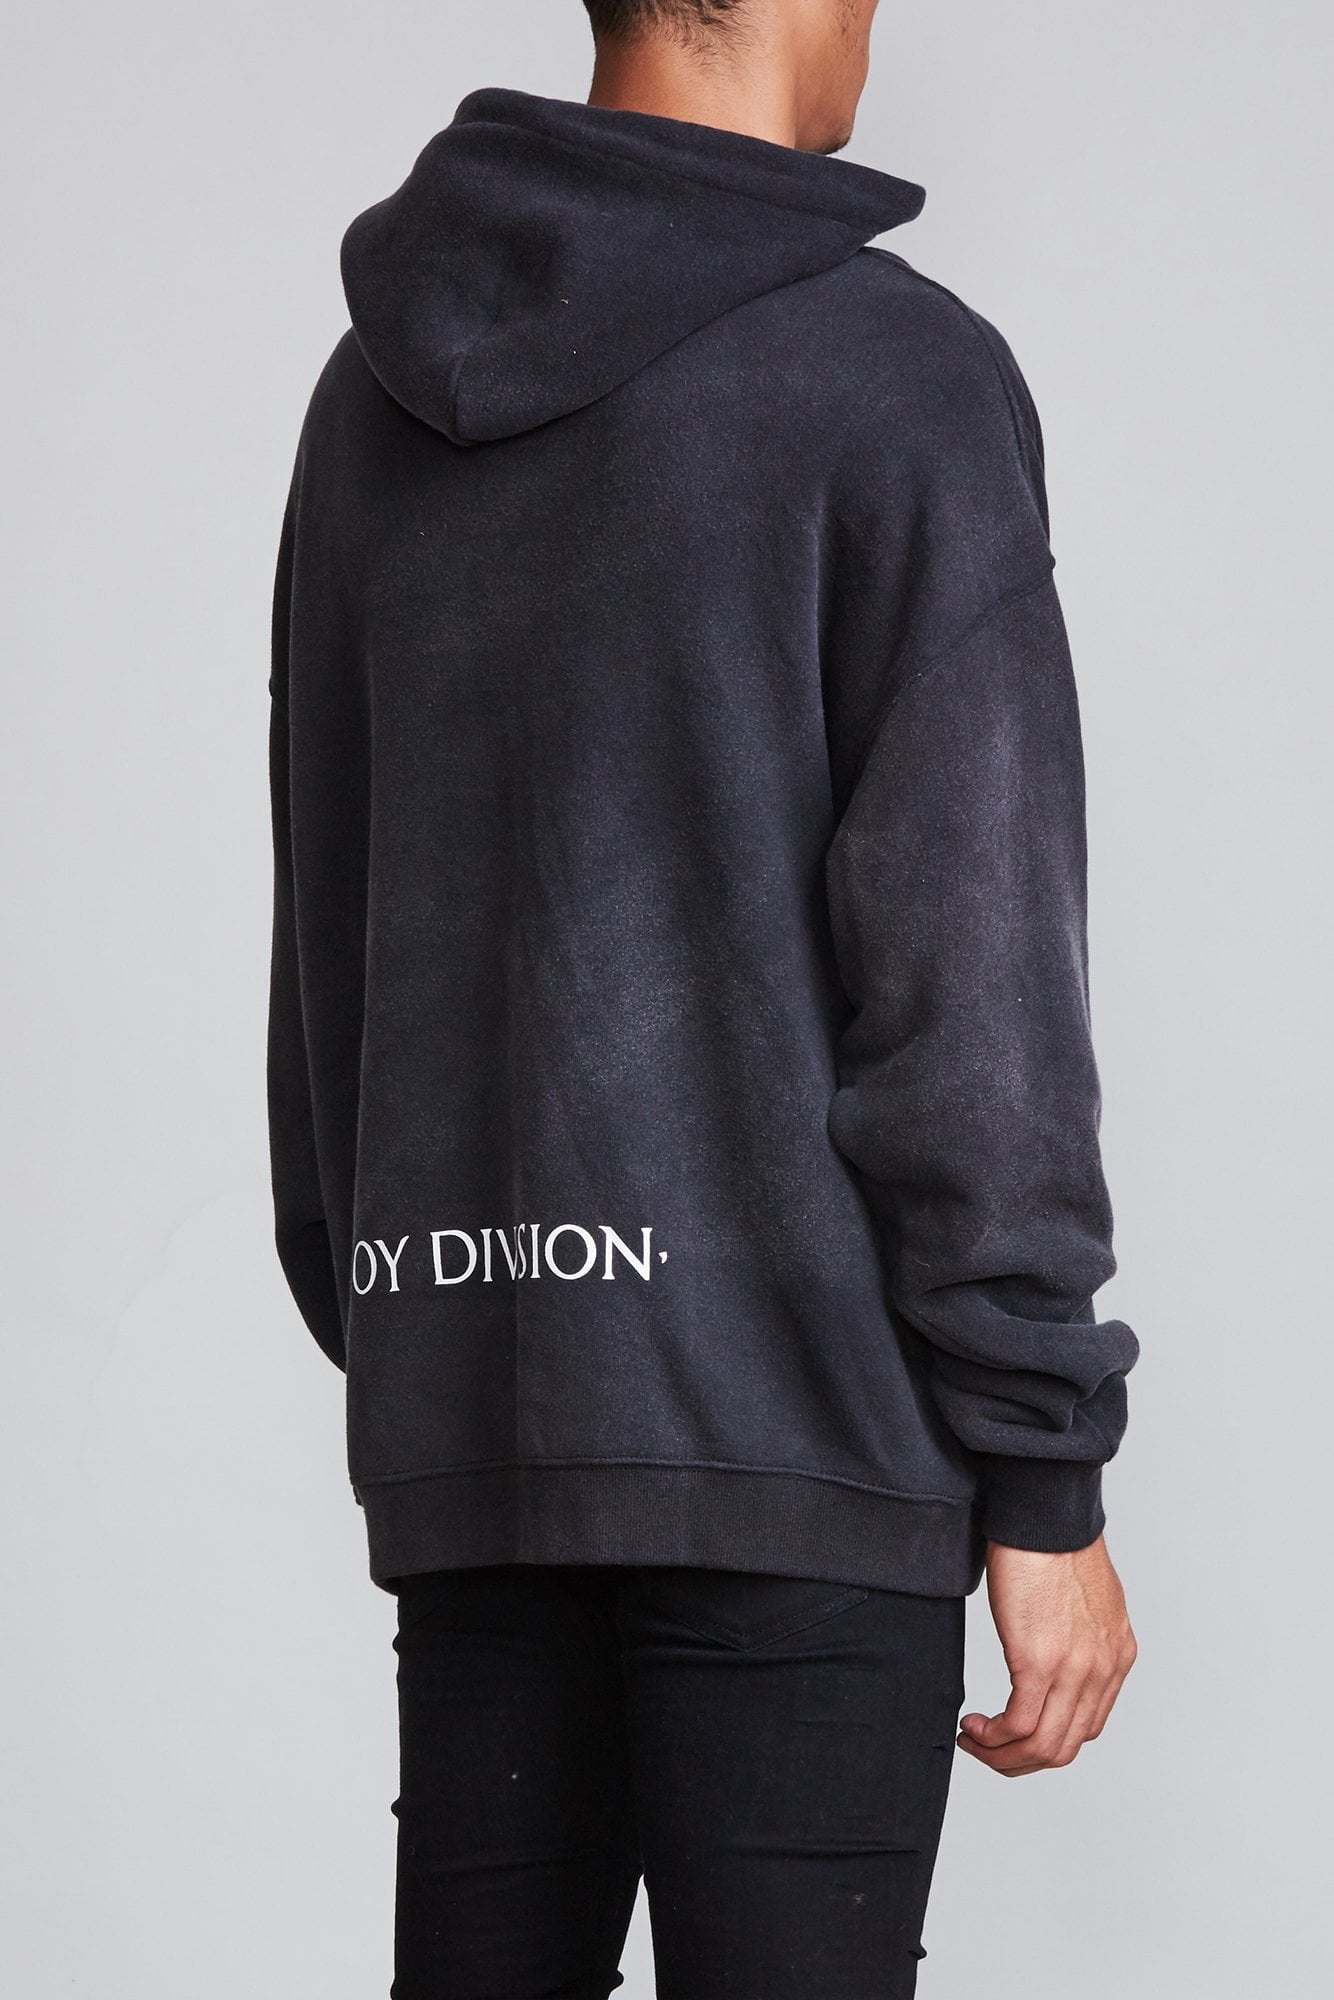 LWTUA Album Oversized Hoodie - Acid Black